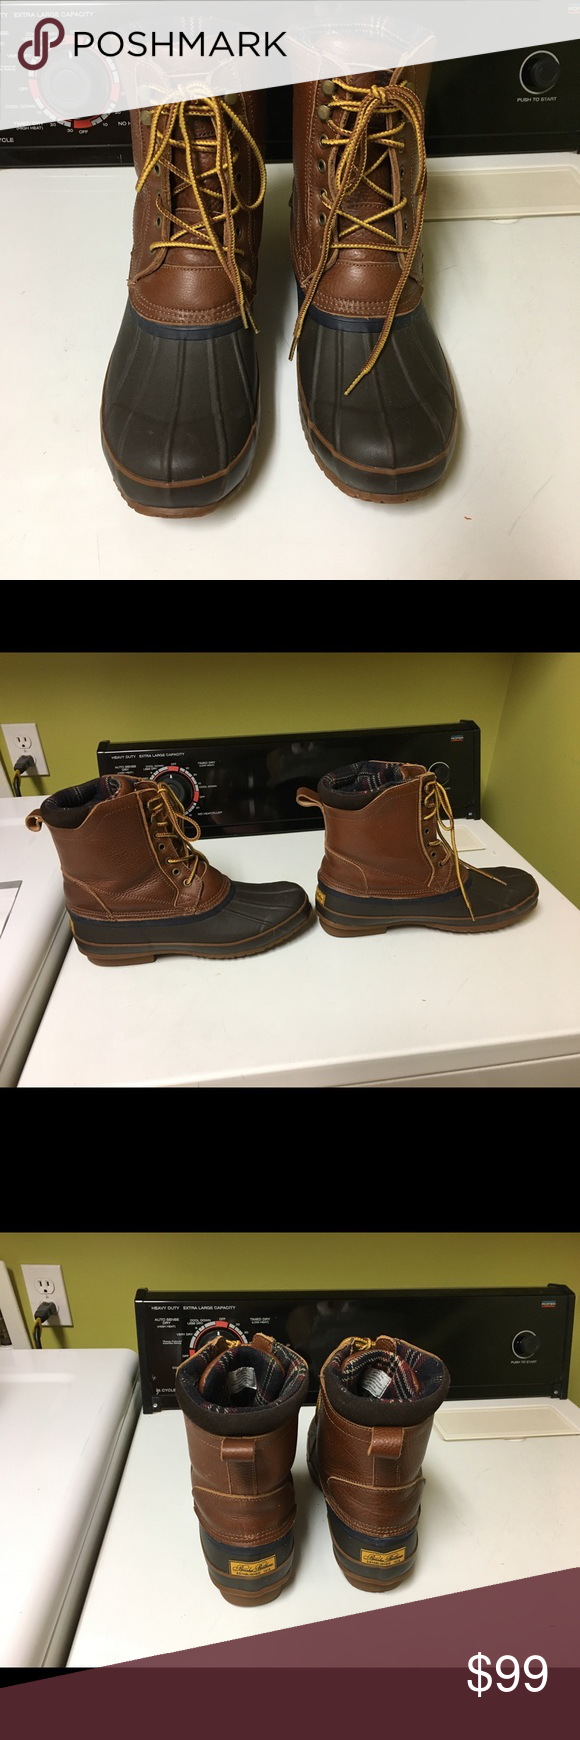 017a6366984 Brooks Brothers Lined Duck Boots! Men s Size 12 Lined Brooks Brothers Duck  Boots - Perfect for Fall! Brooks Brothers Shoes Boots